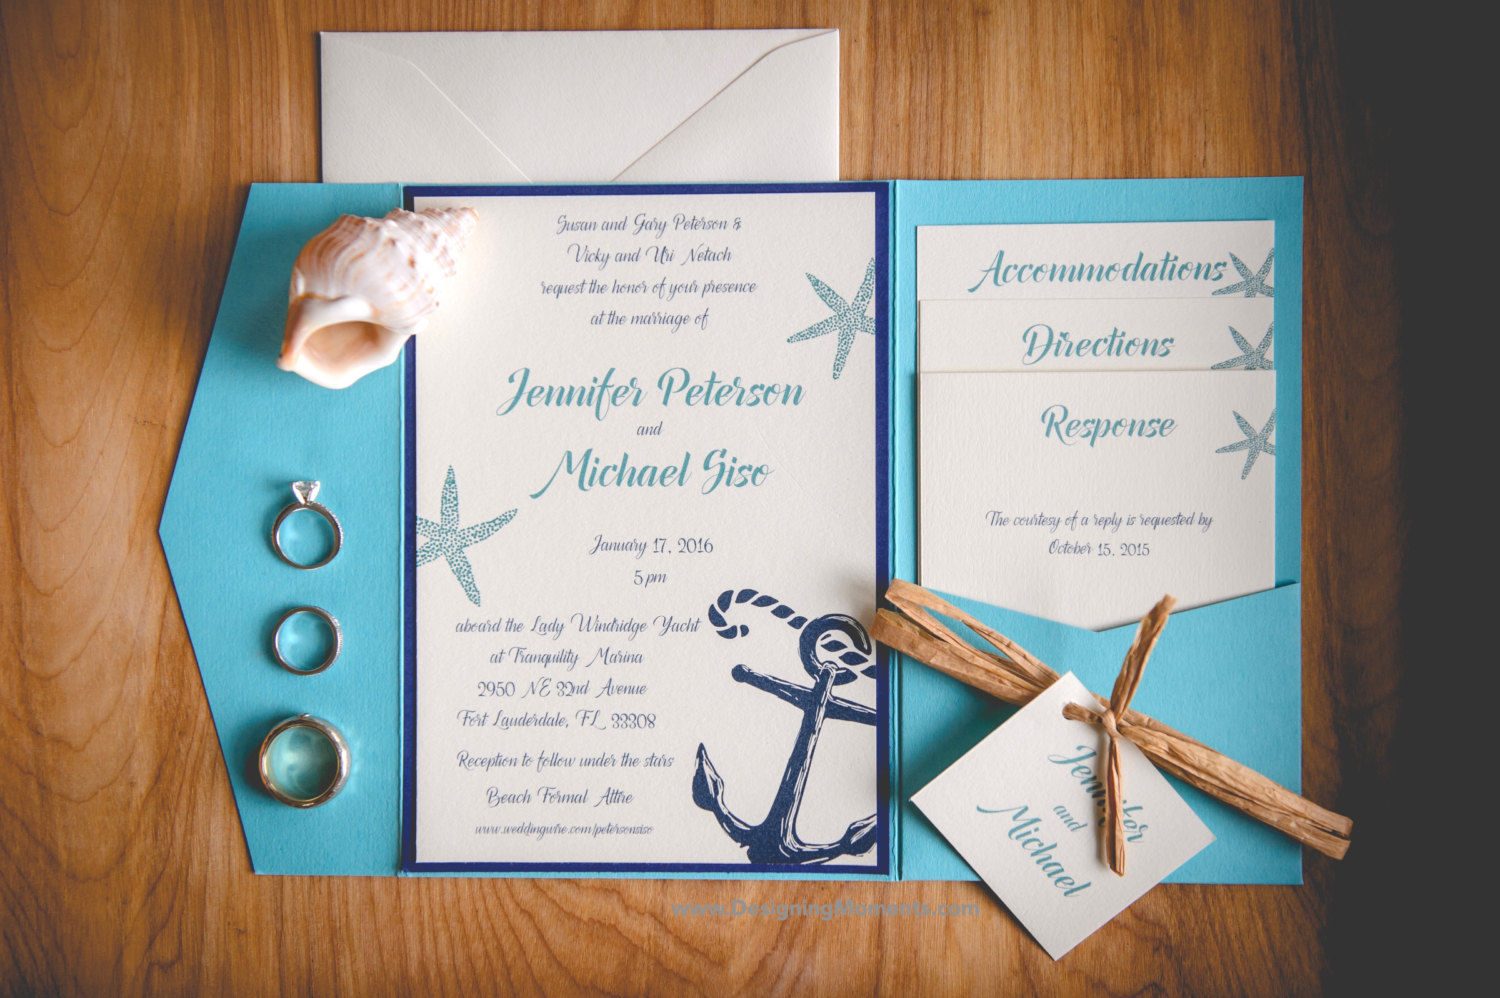 Beach Themed Wedding Invitations Templates: Spread The Word With Stylish And Original Beach Wedding